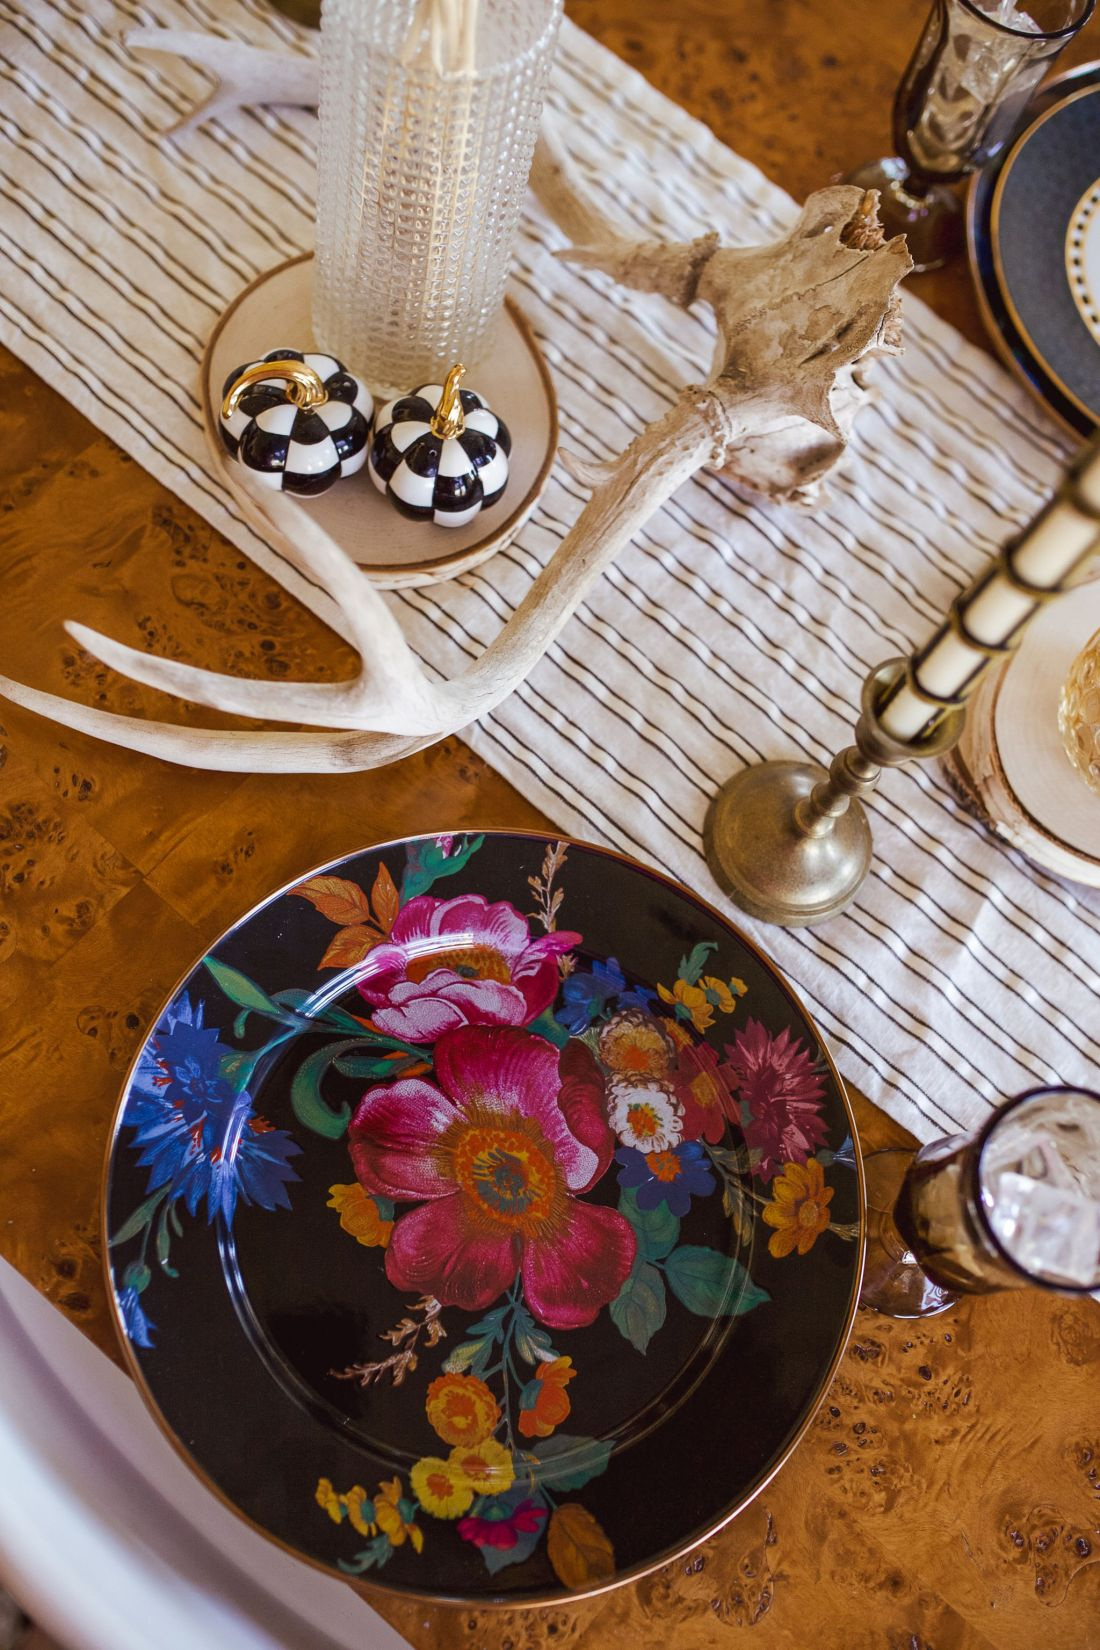 Christmas Tablescape Ideas by popular Nashville life and style blog, Modern Day Moguls: image of a table set with deer antlers, Mackenzie-Childs ceramic pumpkin black and white check salt and pepper shakers, floral glass plate, gold candlestick, blue plates and stripe table runner.